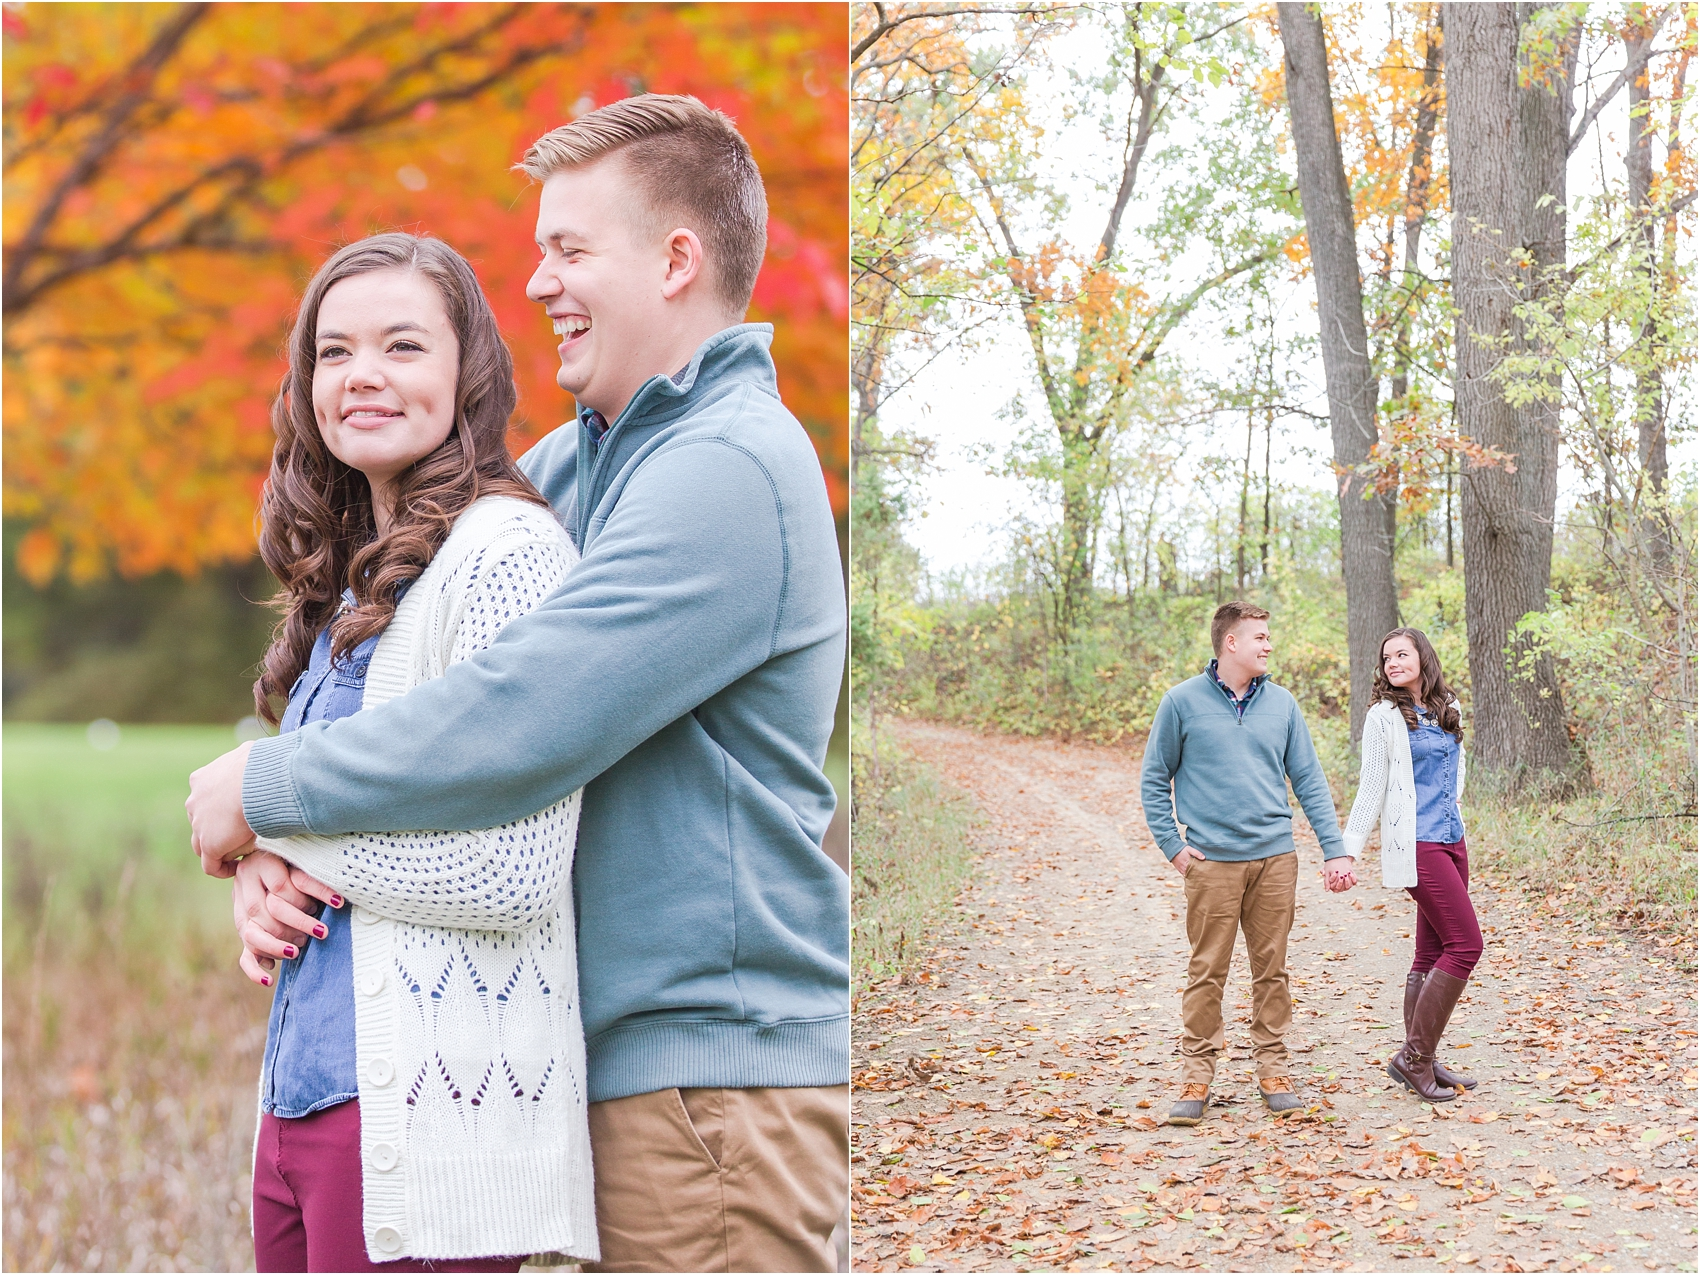 colorful-fall-engagement-photos-at-the-lake-at-huron-meadows-metropark-in-brighton-michigan-by-courtney-carolyn-photography_0012.jpg